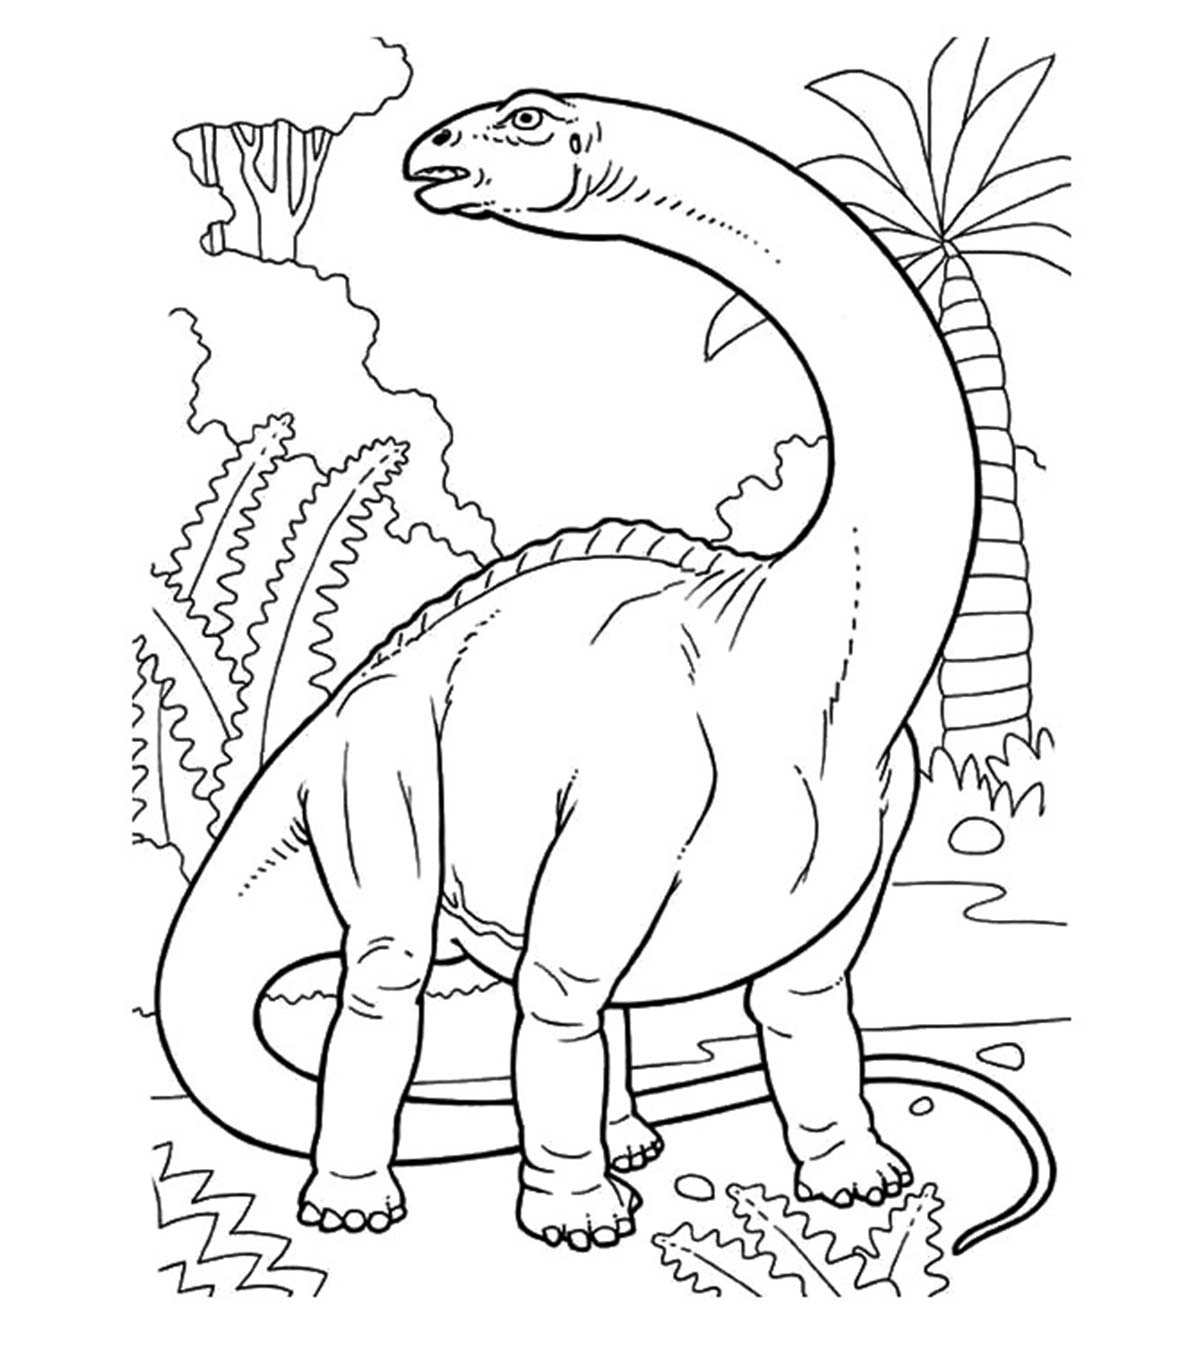 dinosaurs coloring page dinosaur coloring pages dinopit dinosaurs page coloring